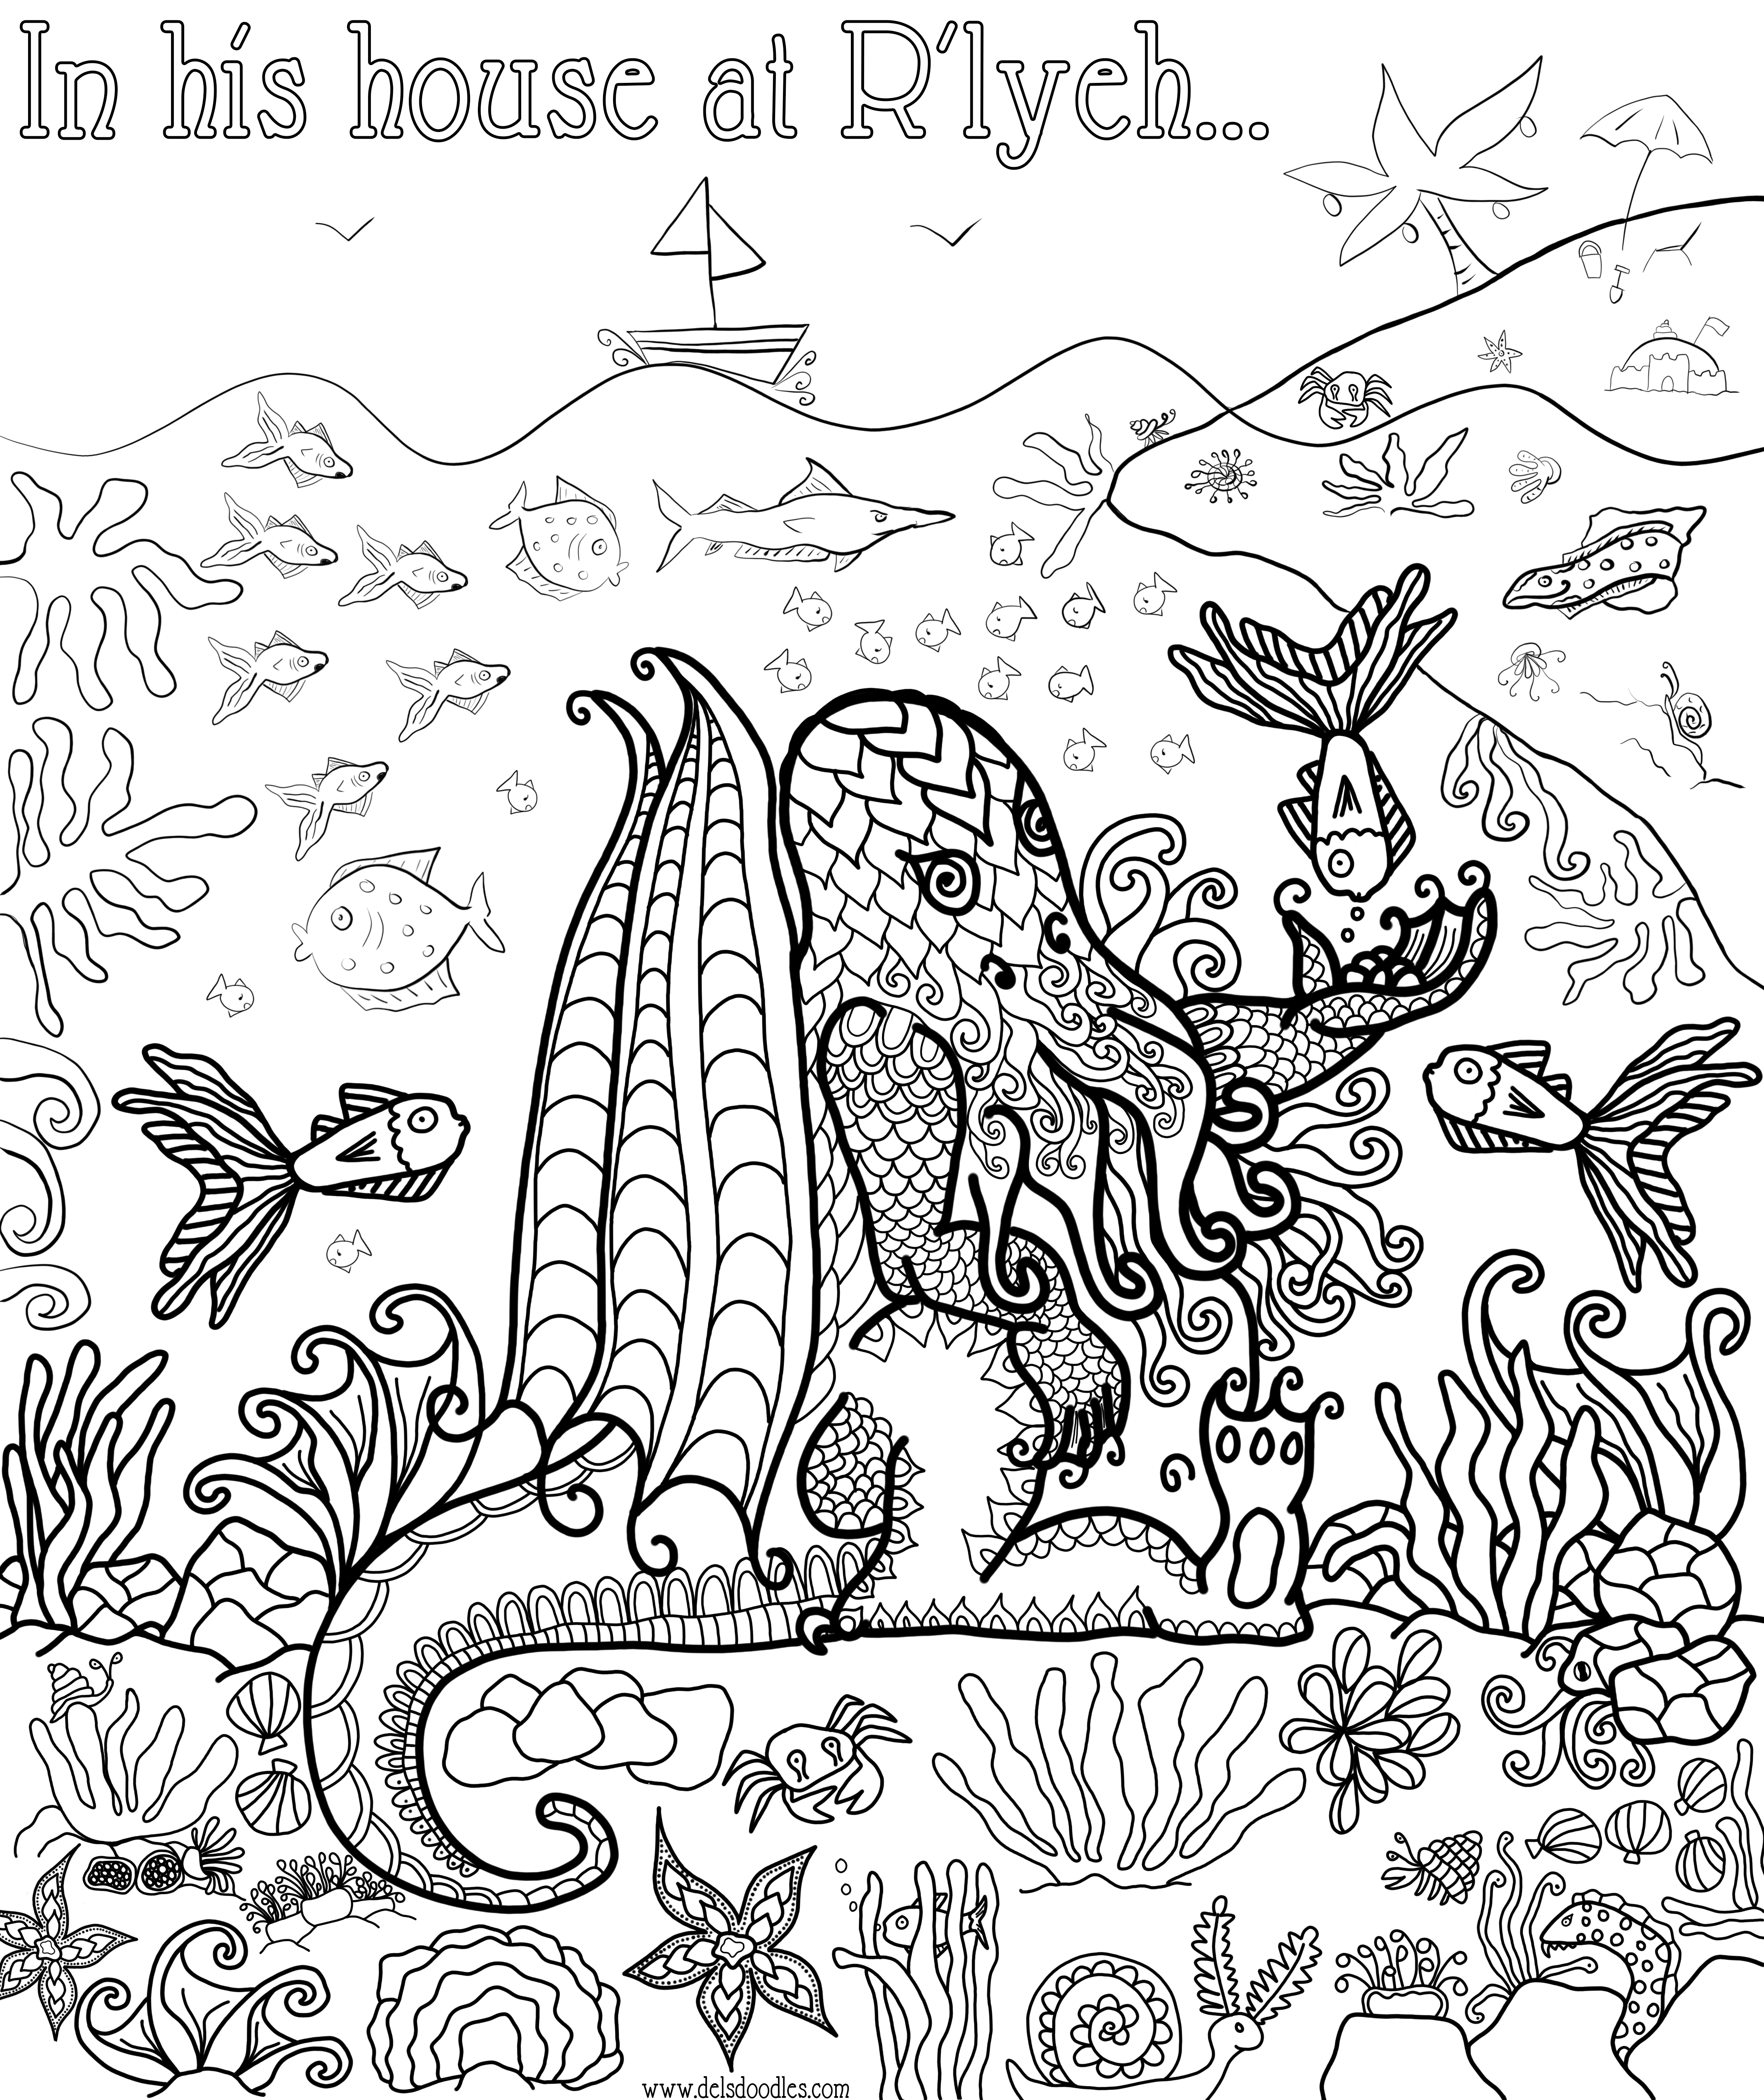 Cthulhu coloring #1, Download drawings